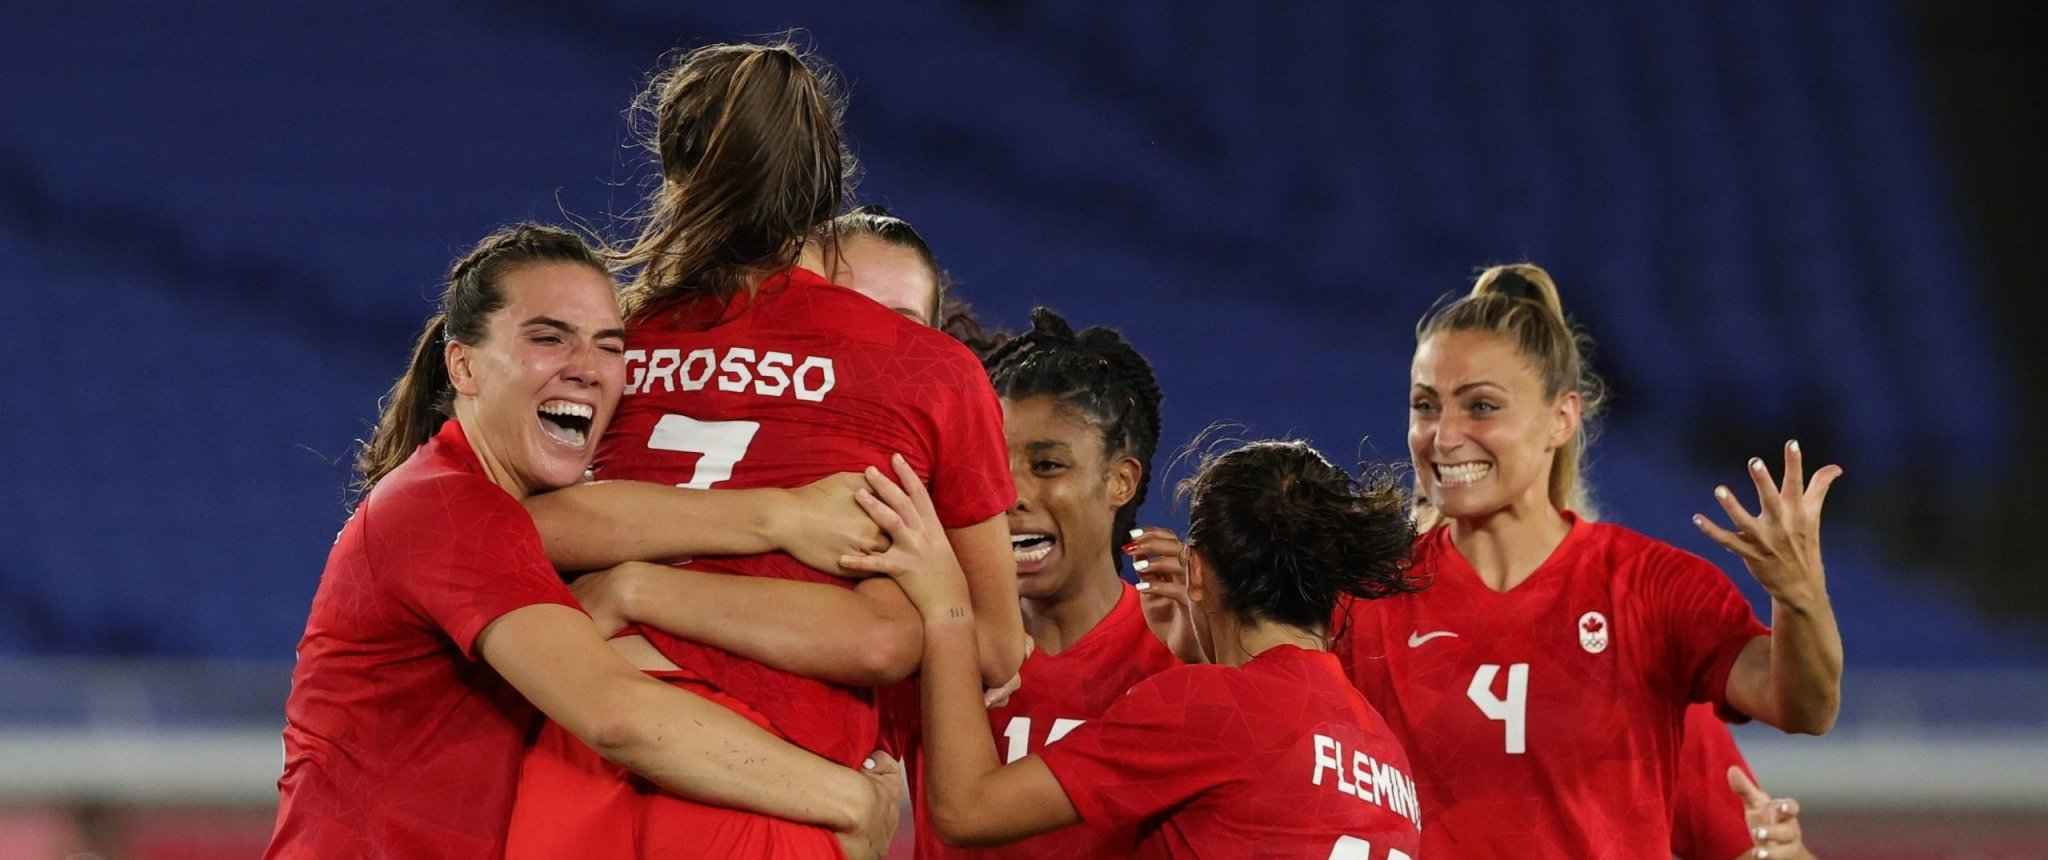 Olympics-Soccer-Canada take women's gold after shootout win over Sweden